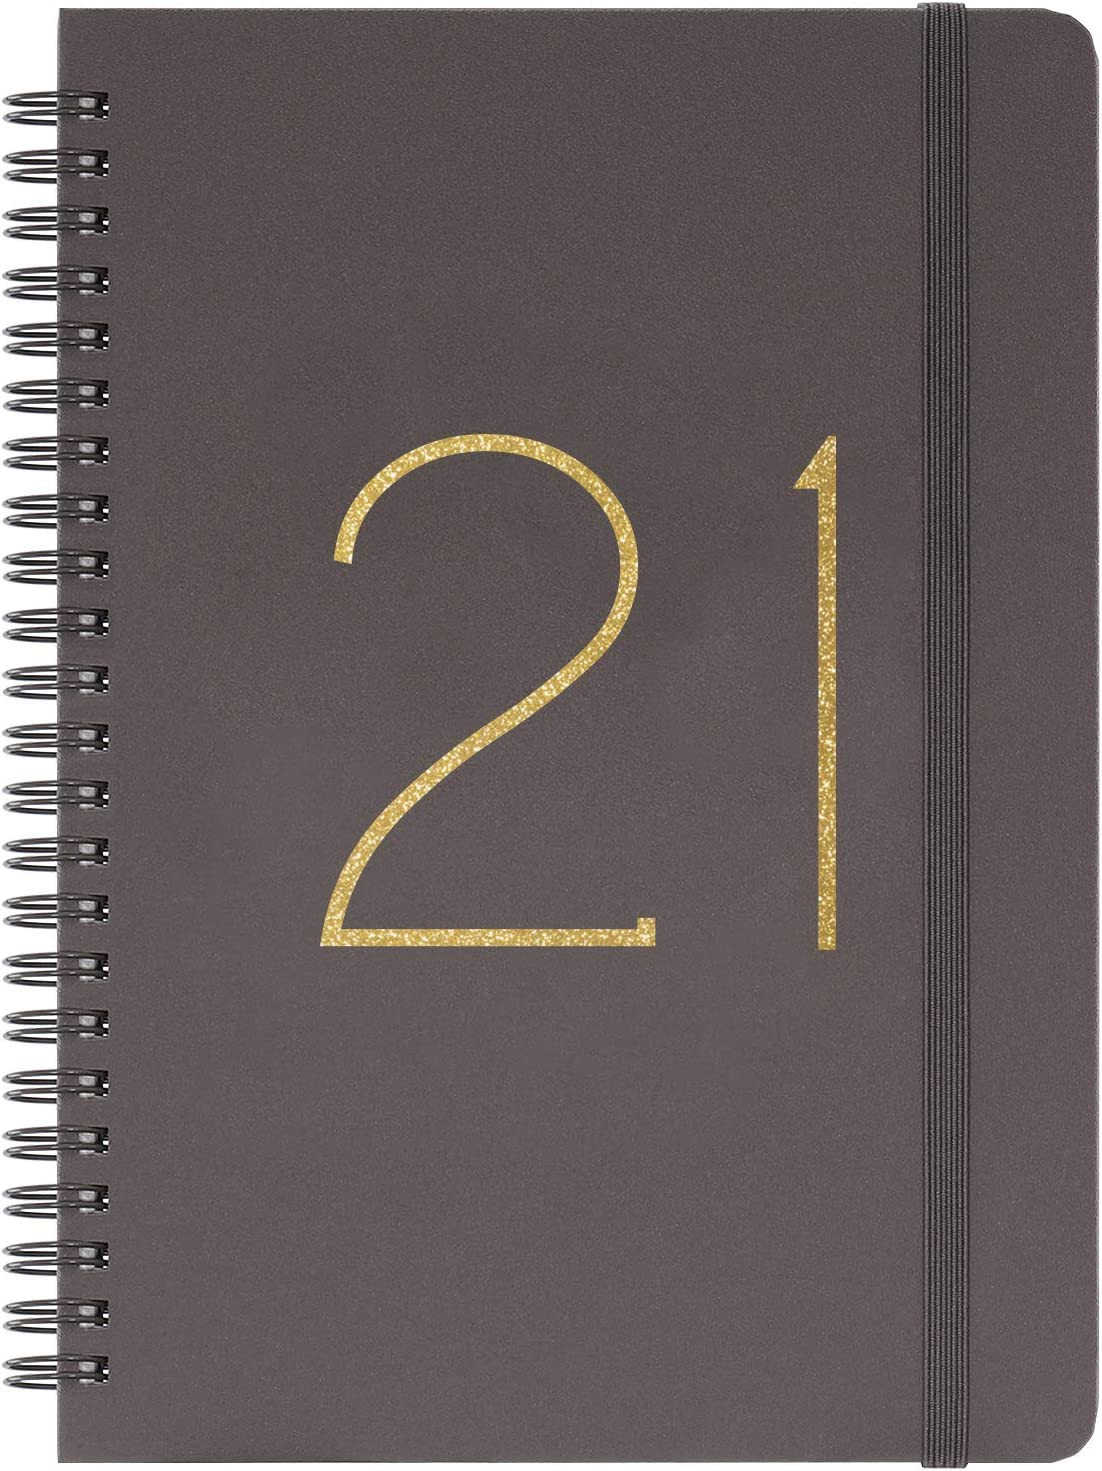 """Academic Weekly /& Monthly Planner with Tabs 6.5/"""" x 8.5/"""" New Planner 2020-2021"""